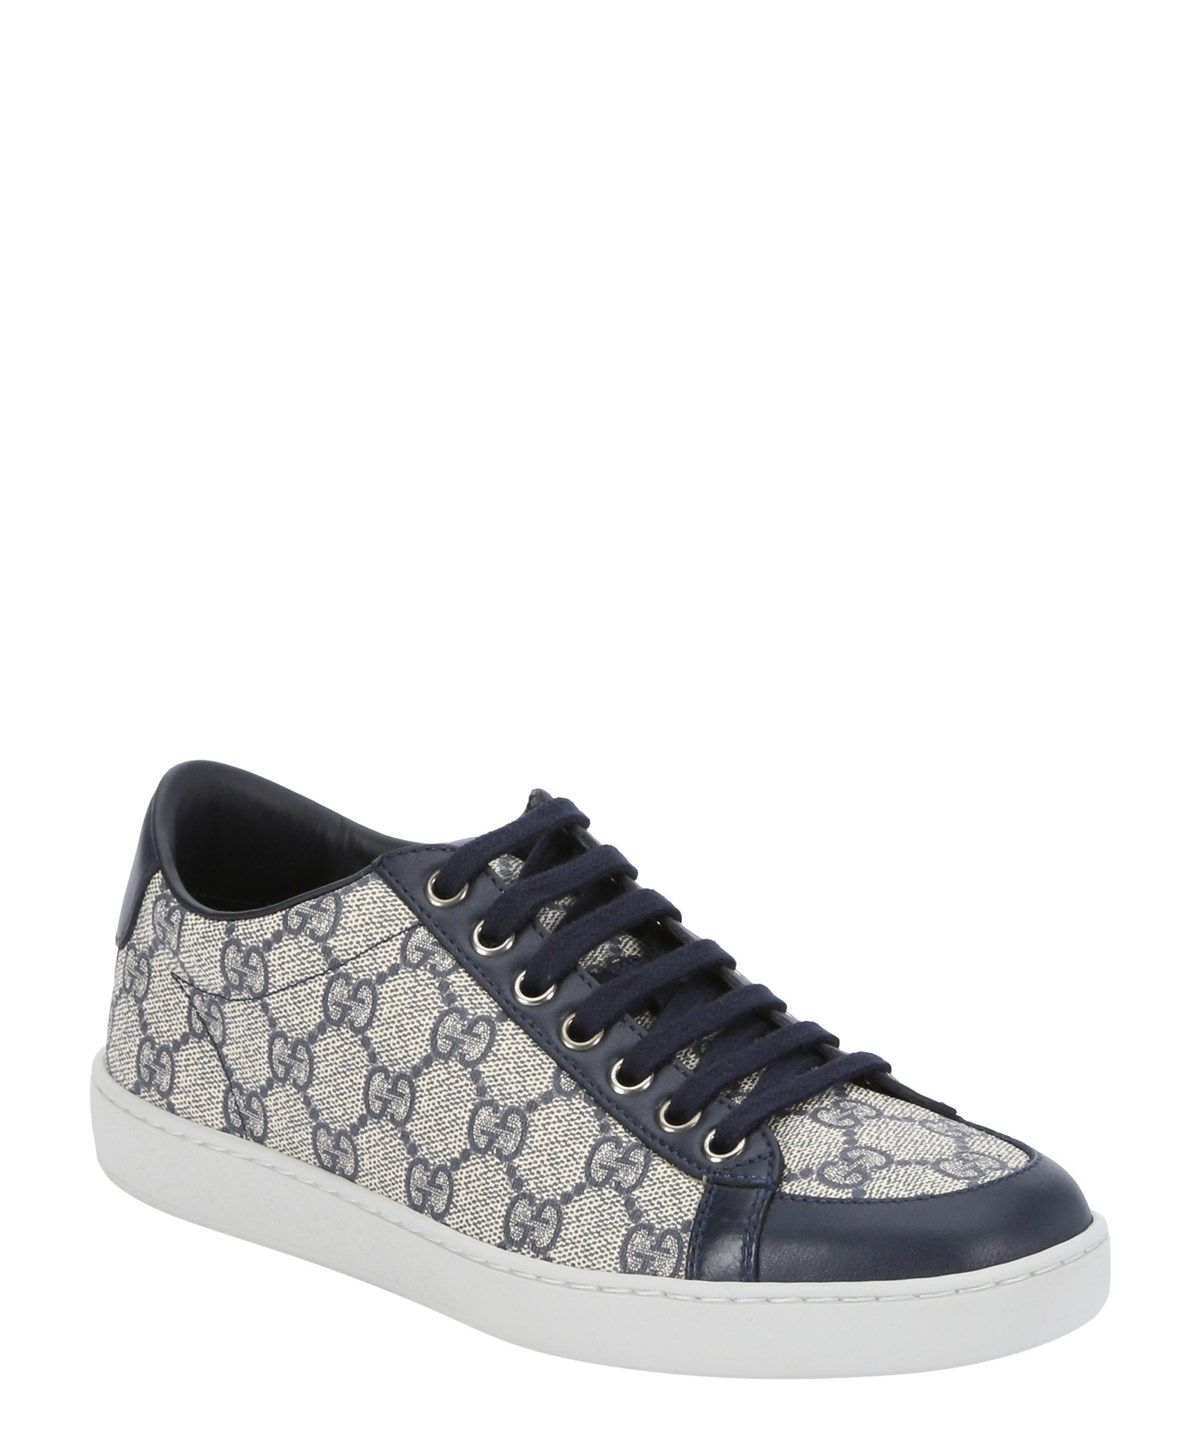 44922661877 GUCCI Beige And Blue Leather Accent Gg Canvas Lace Up Sneakers .  gucci   shoes  sneakers